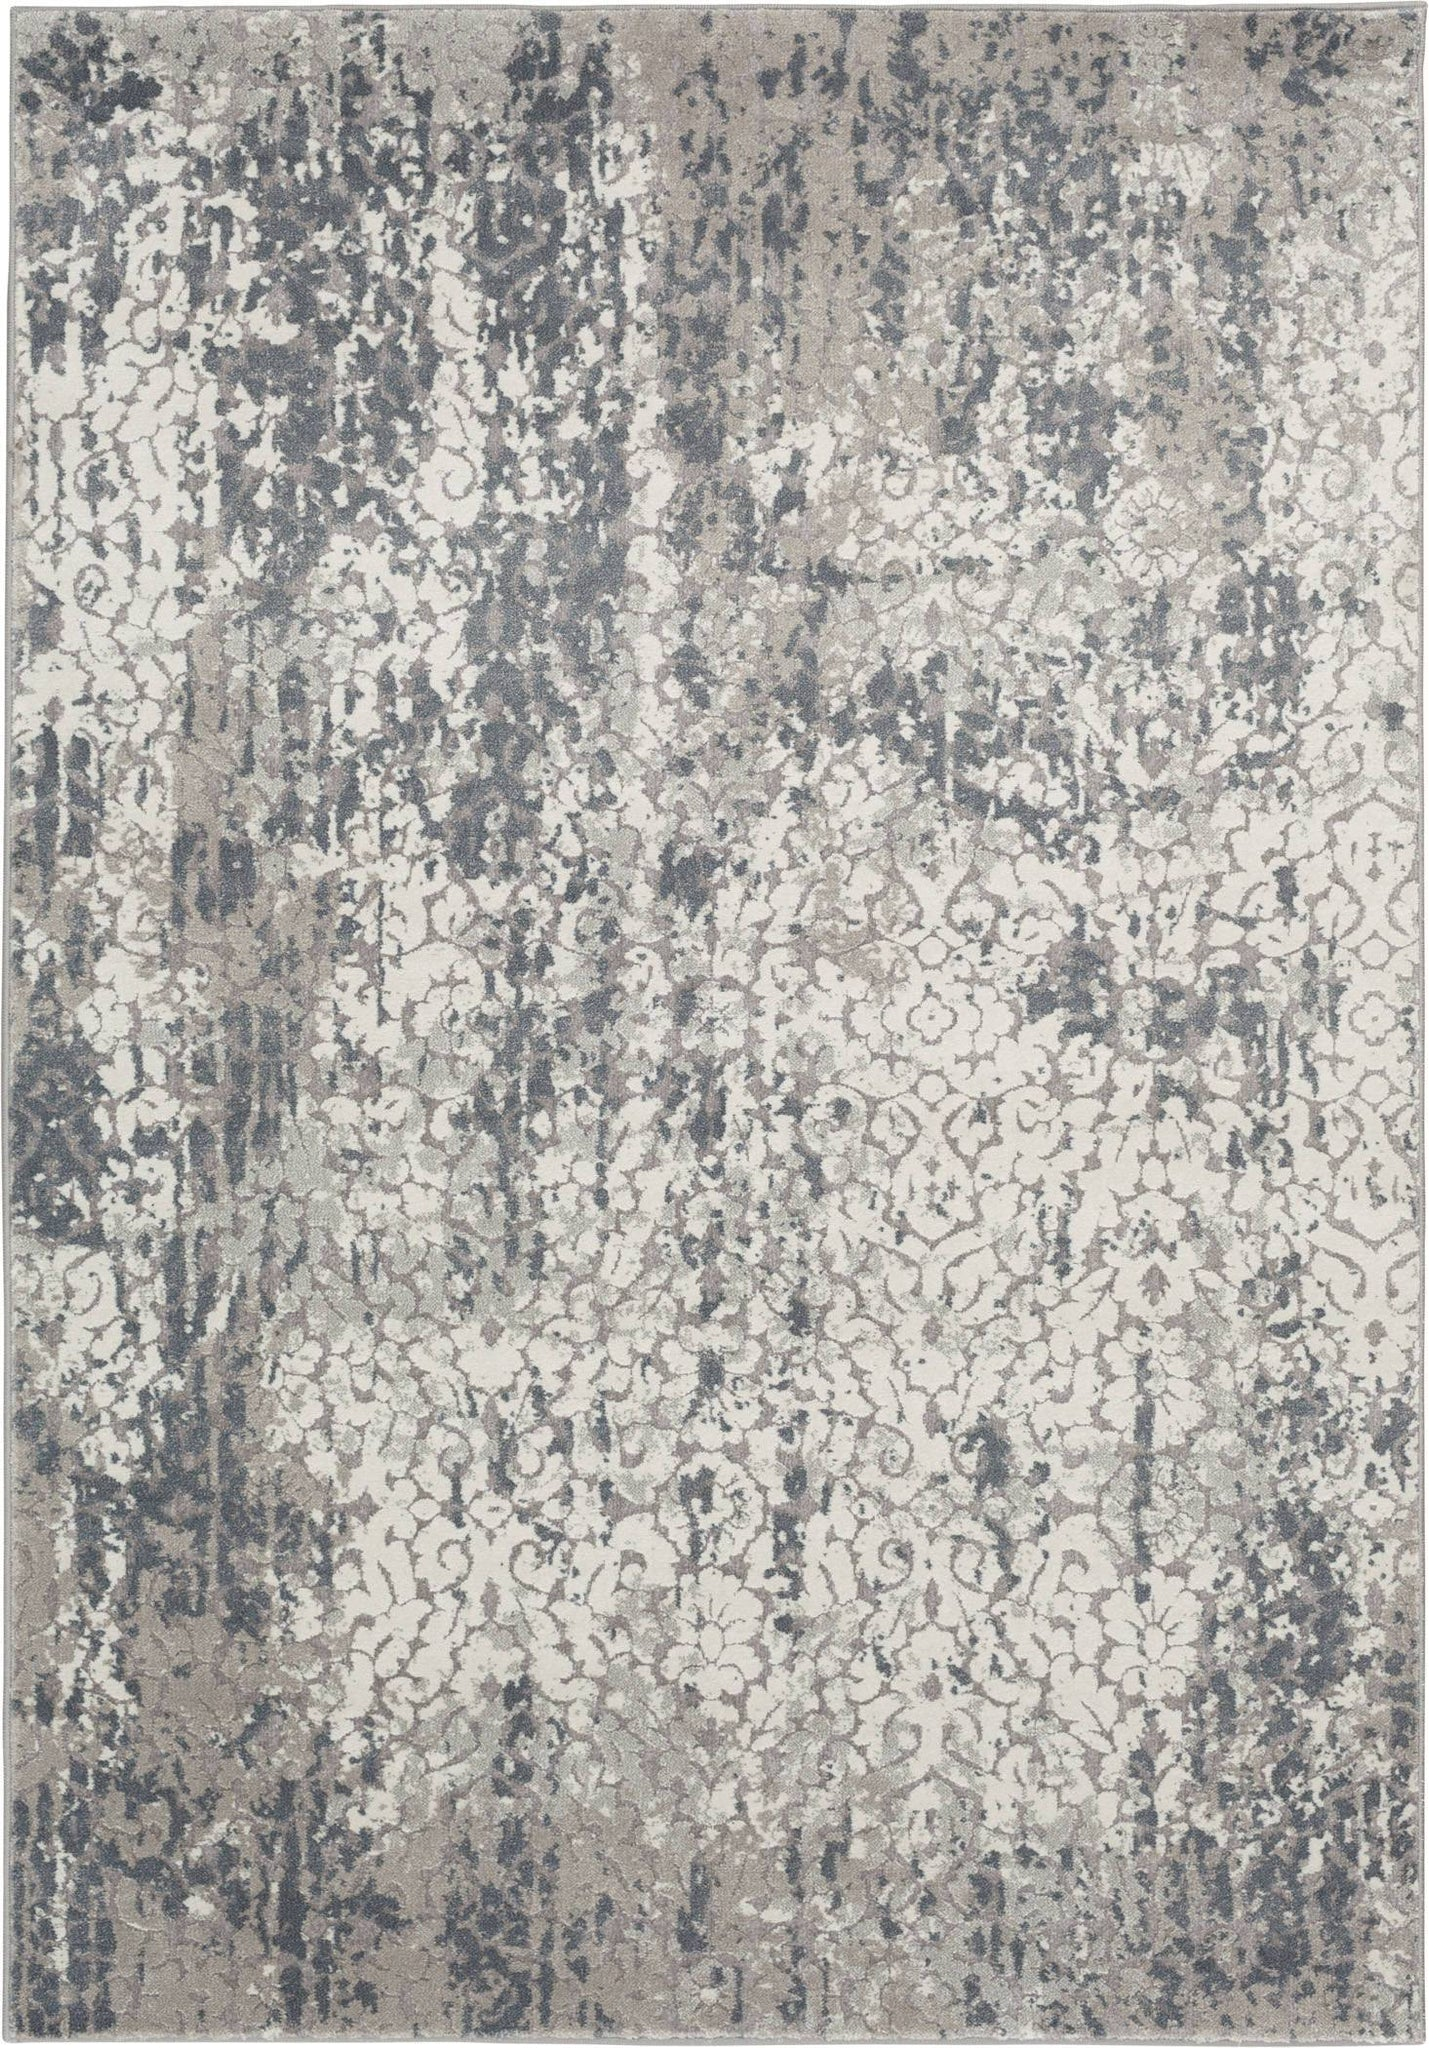 Rug Depot Home Area Rugs Traditions Area Rugs 2837YC Grey in 15 Sizes Made in USA